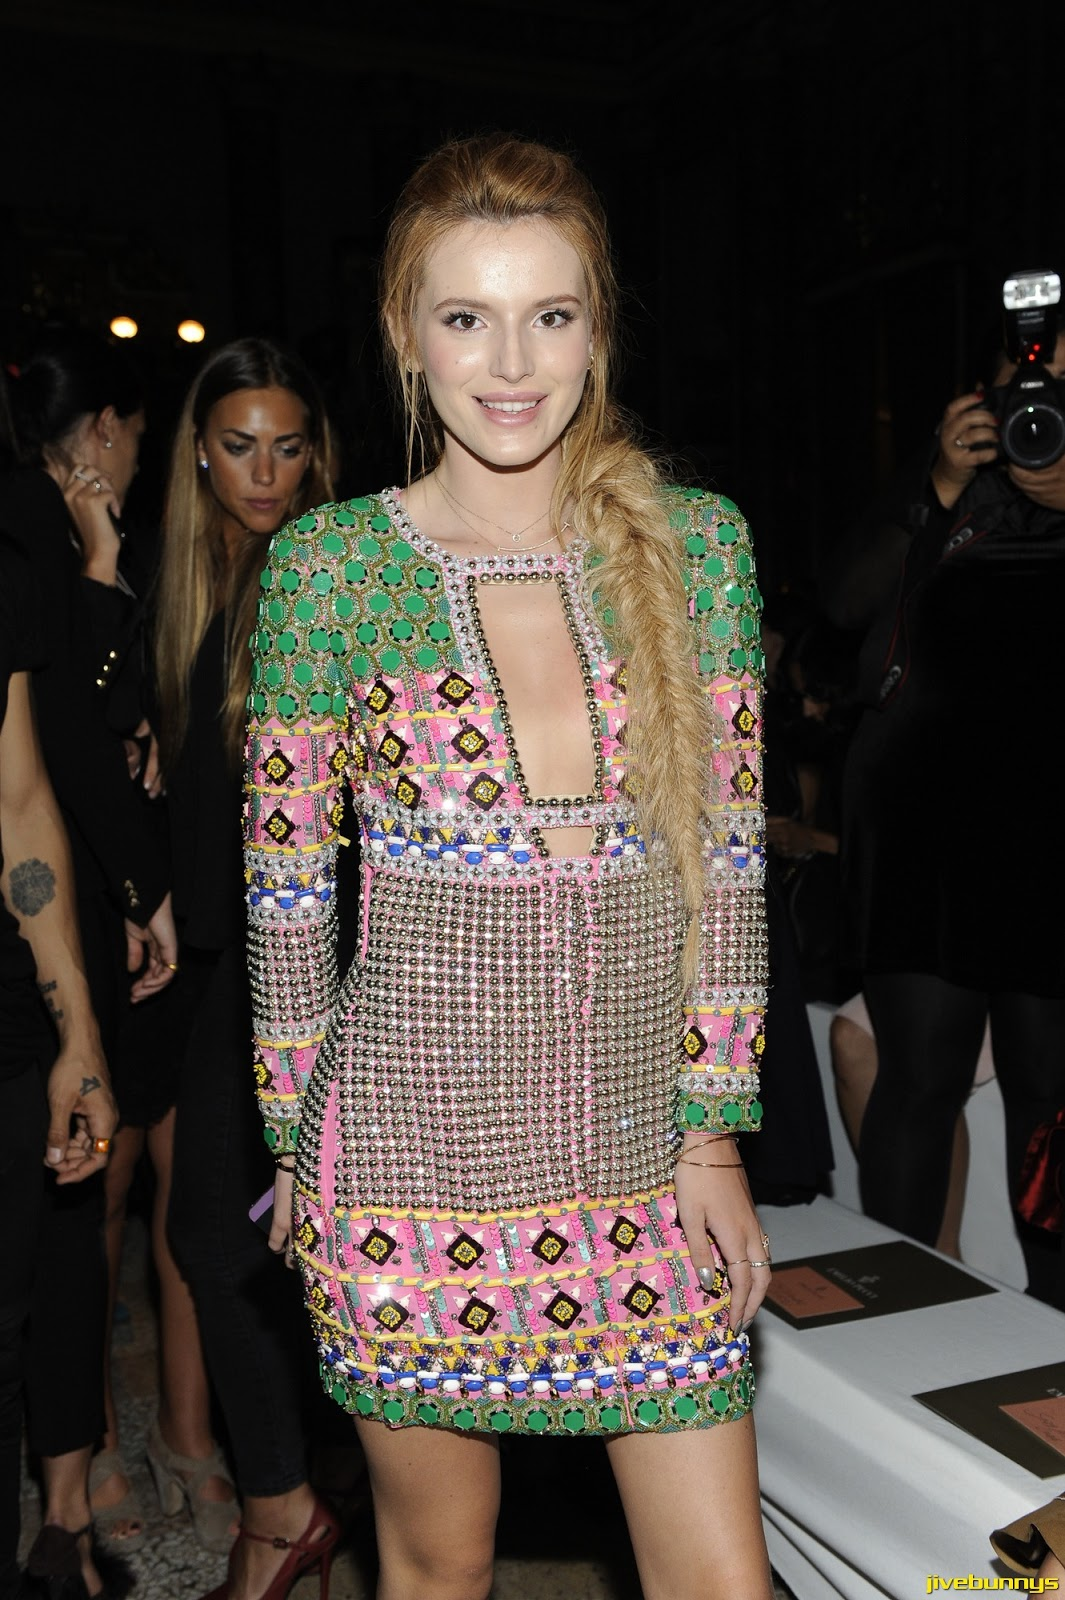 Bella Thorne - Pucci show in Milan 9/20/14